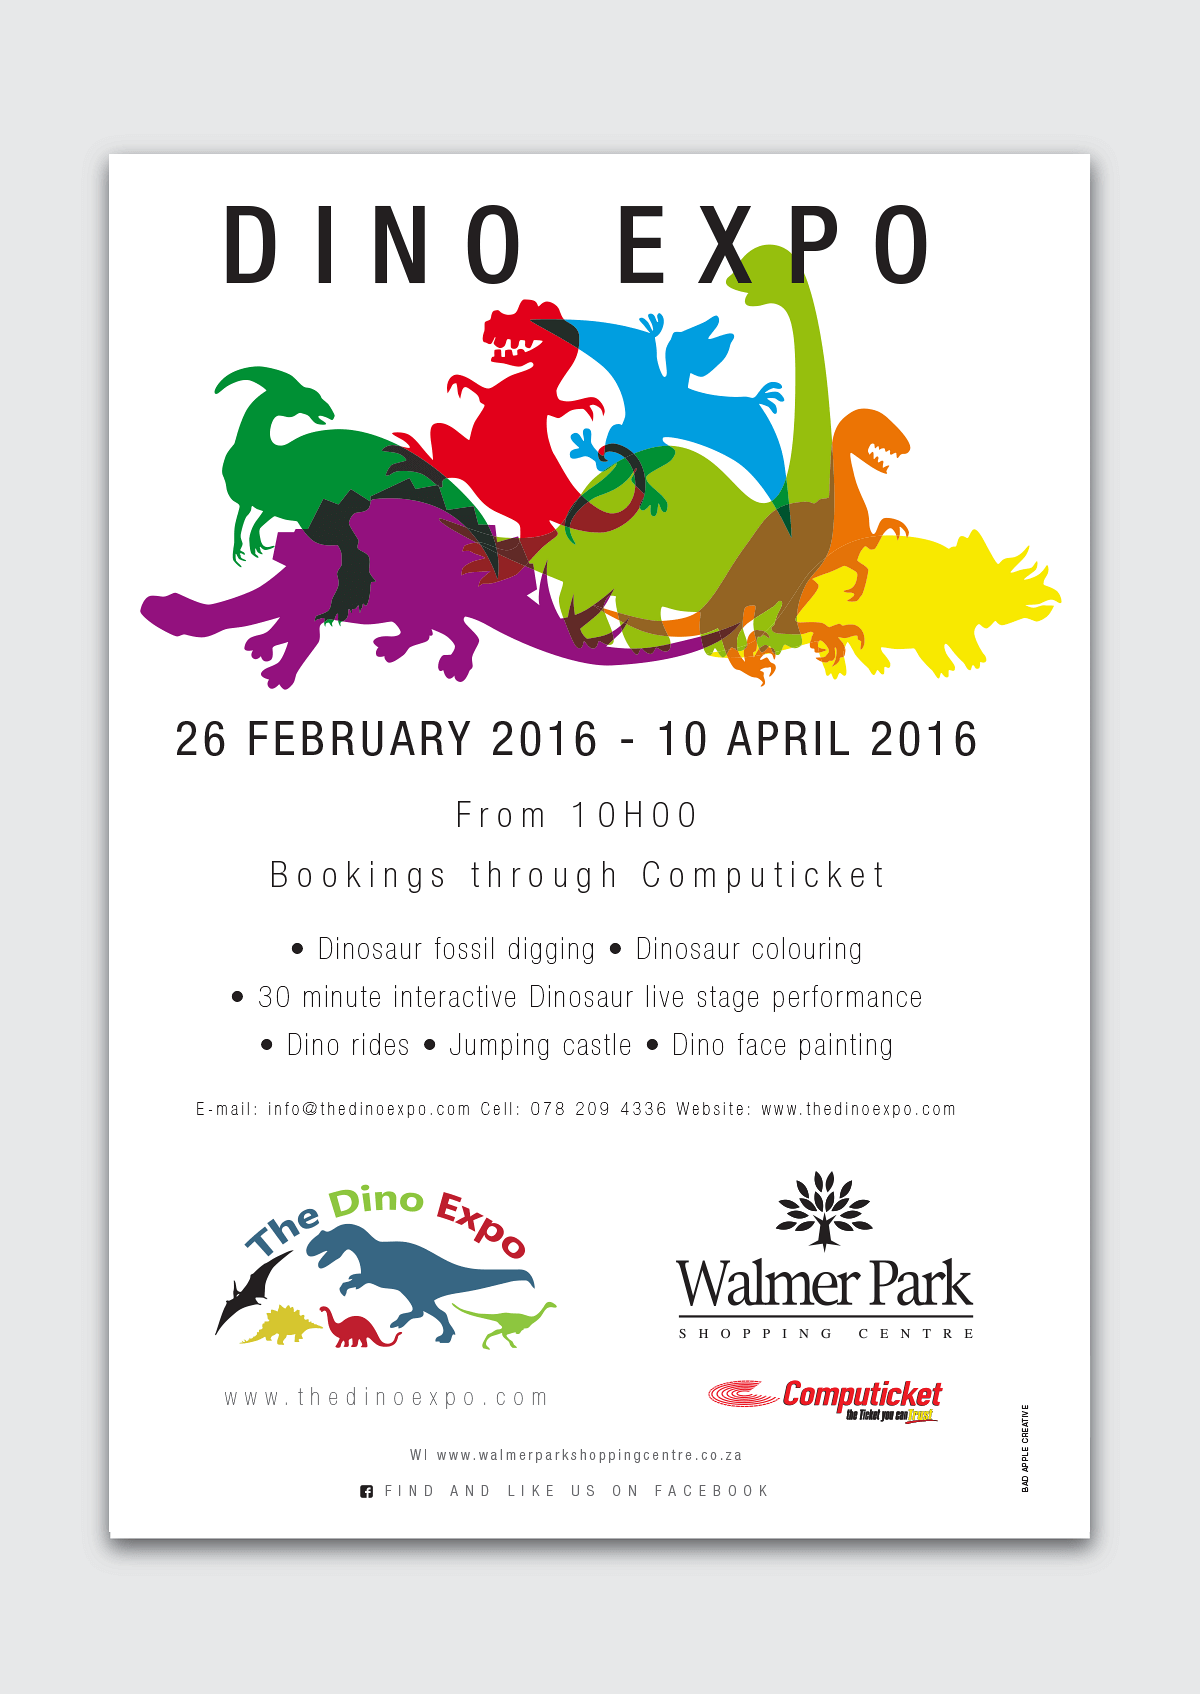 Walmer-Park-Page-Icon-Dino-Expo-Poster-1